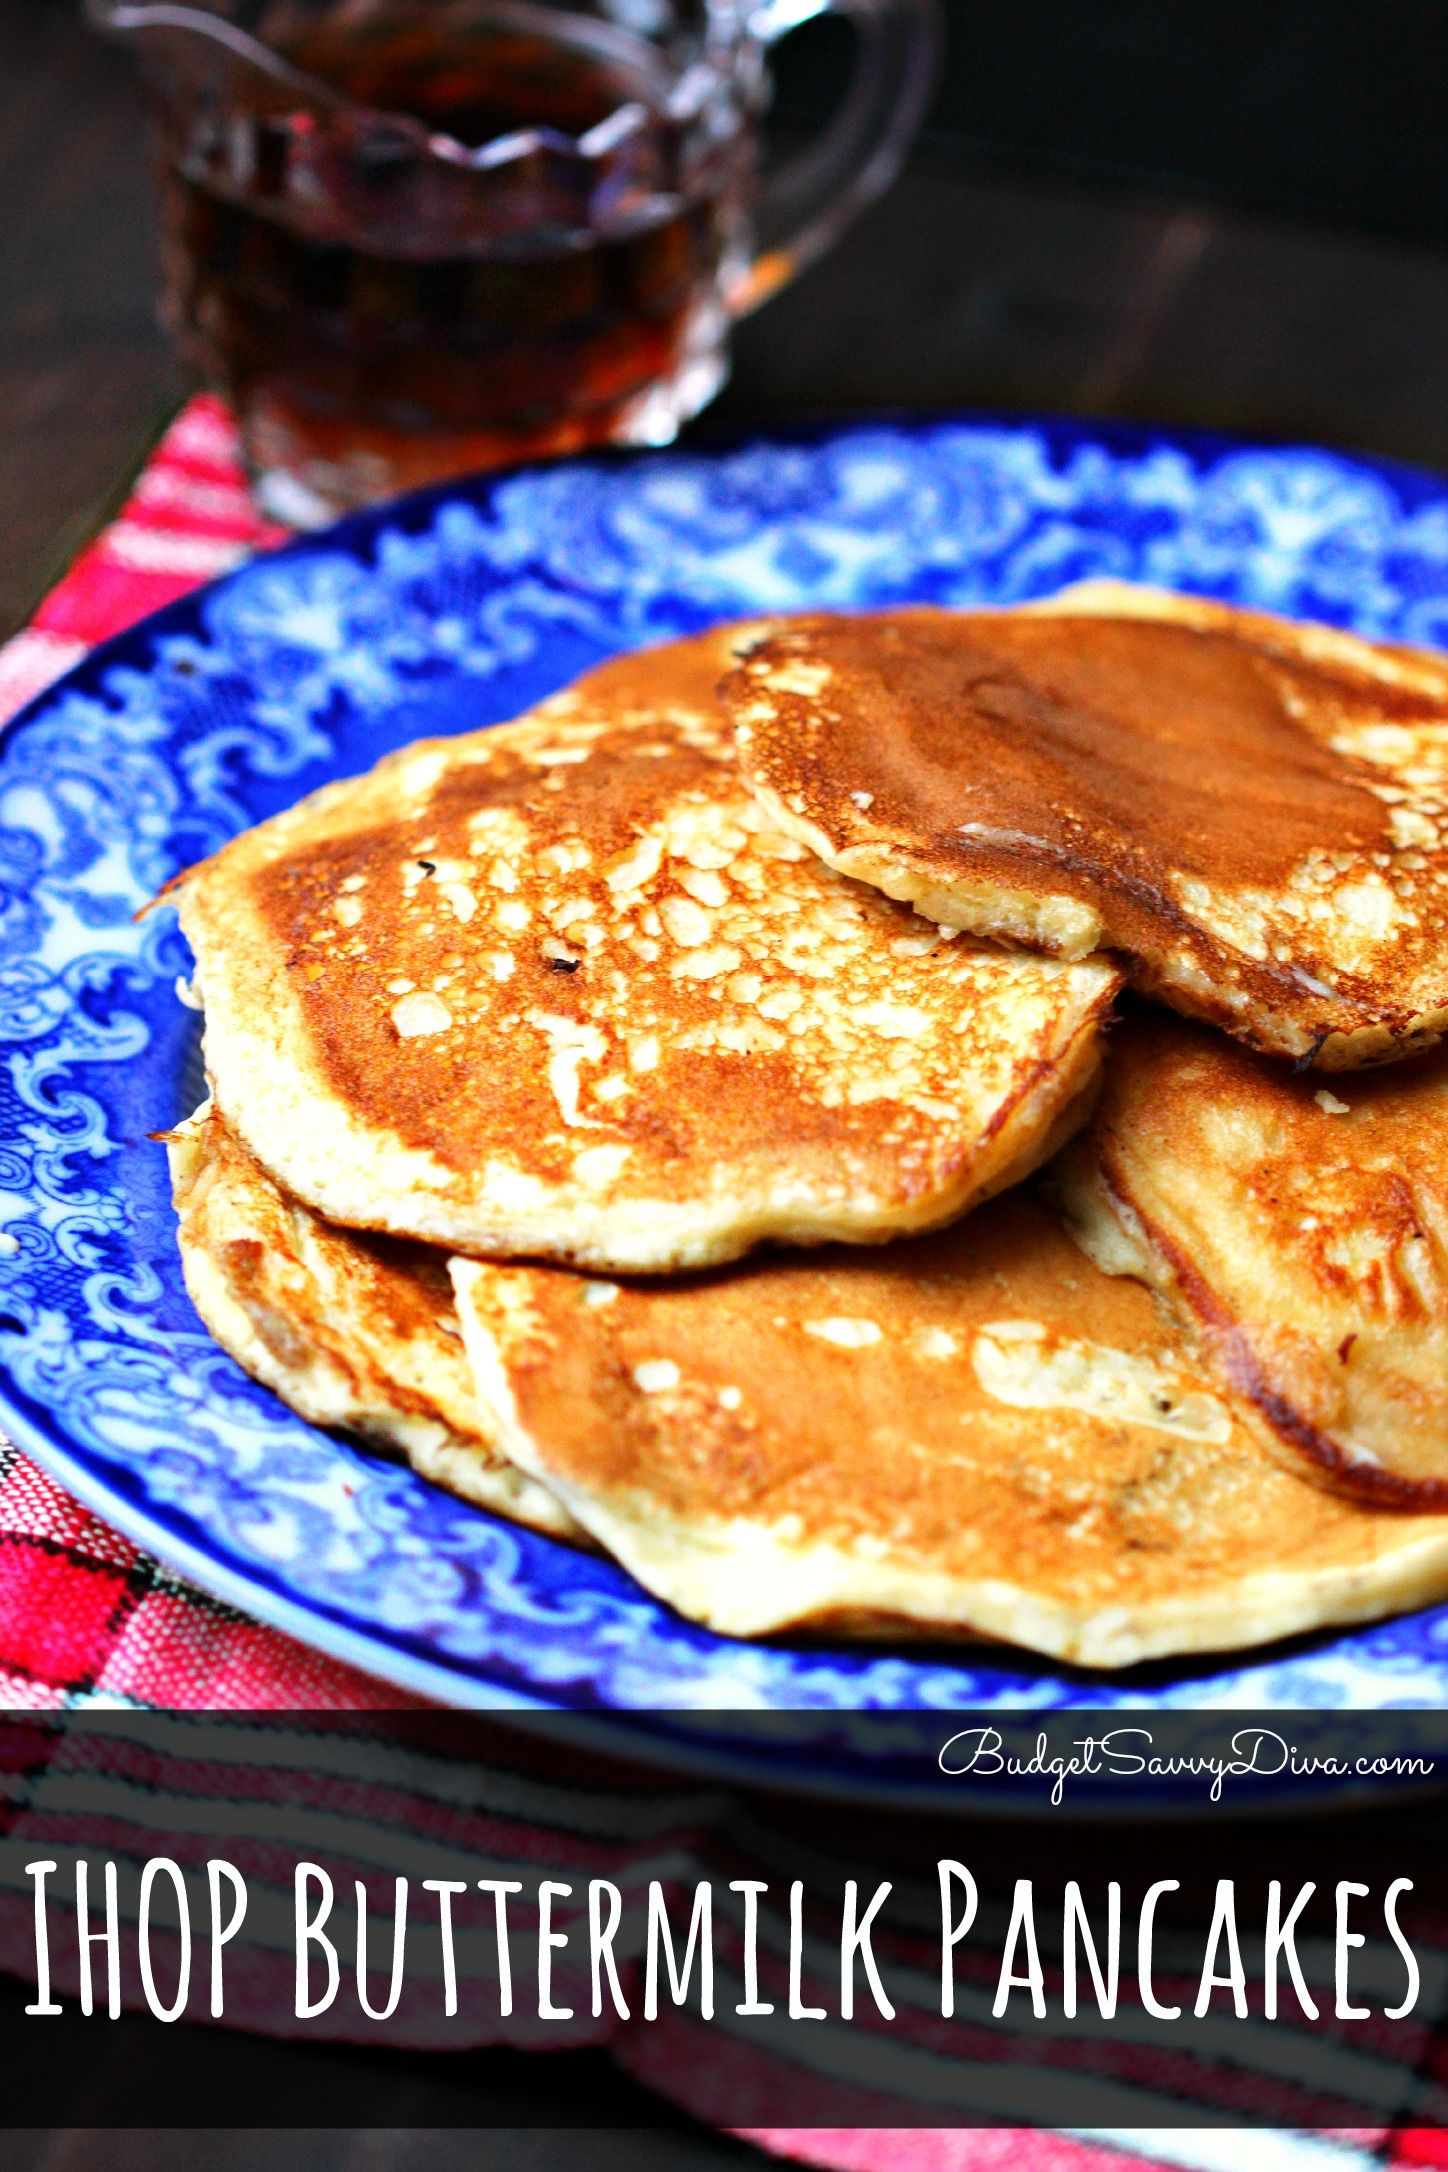 Ihop Buttermilk Pancakes Recipe With Images Easter Brunch Food